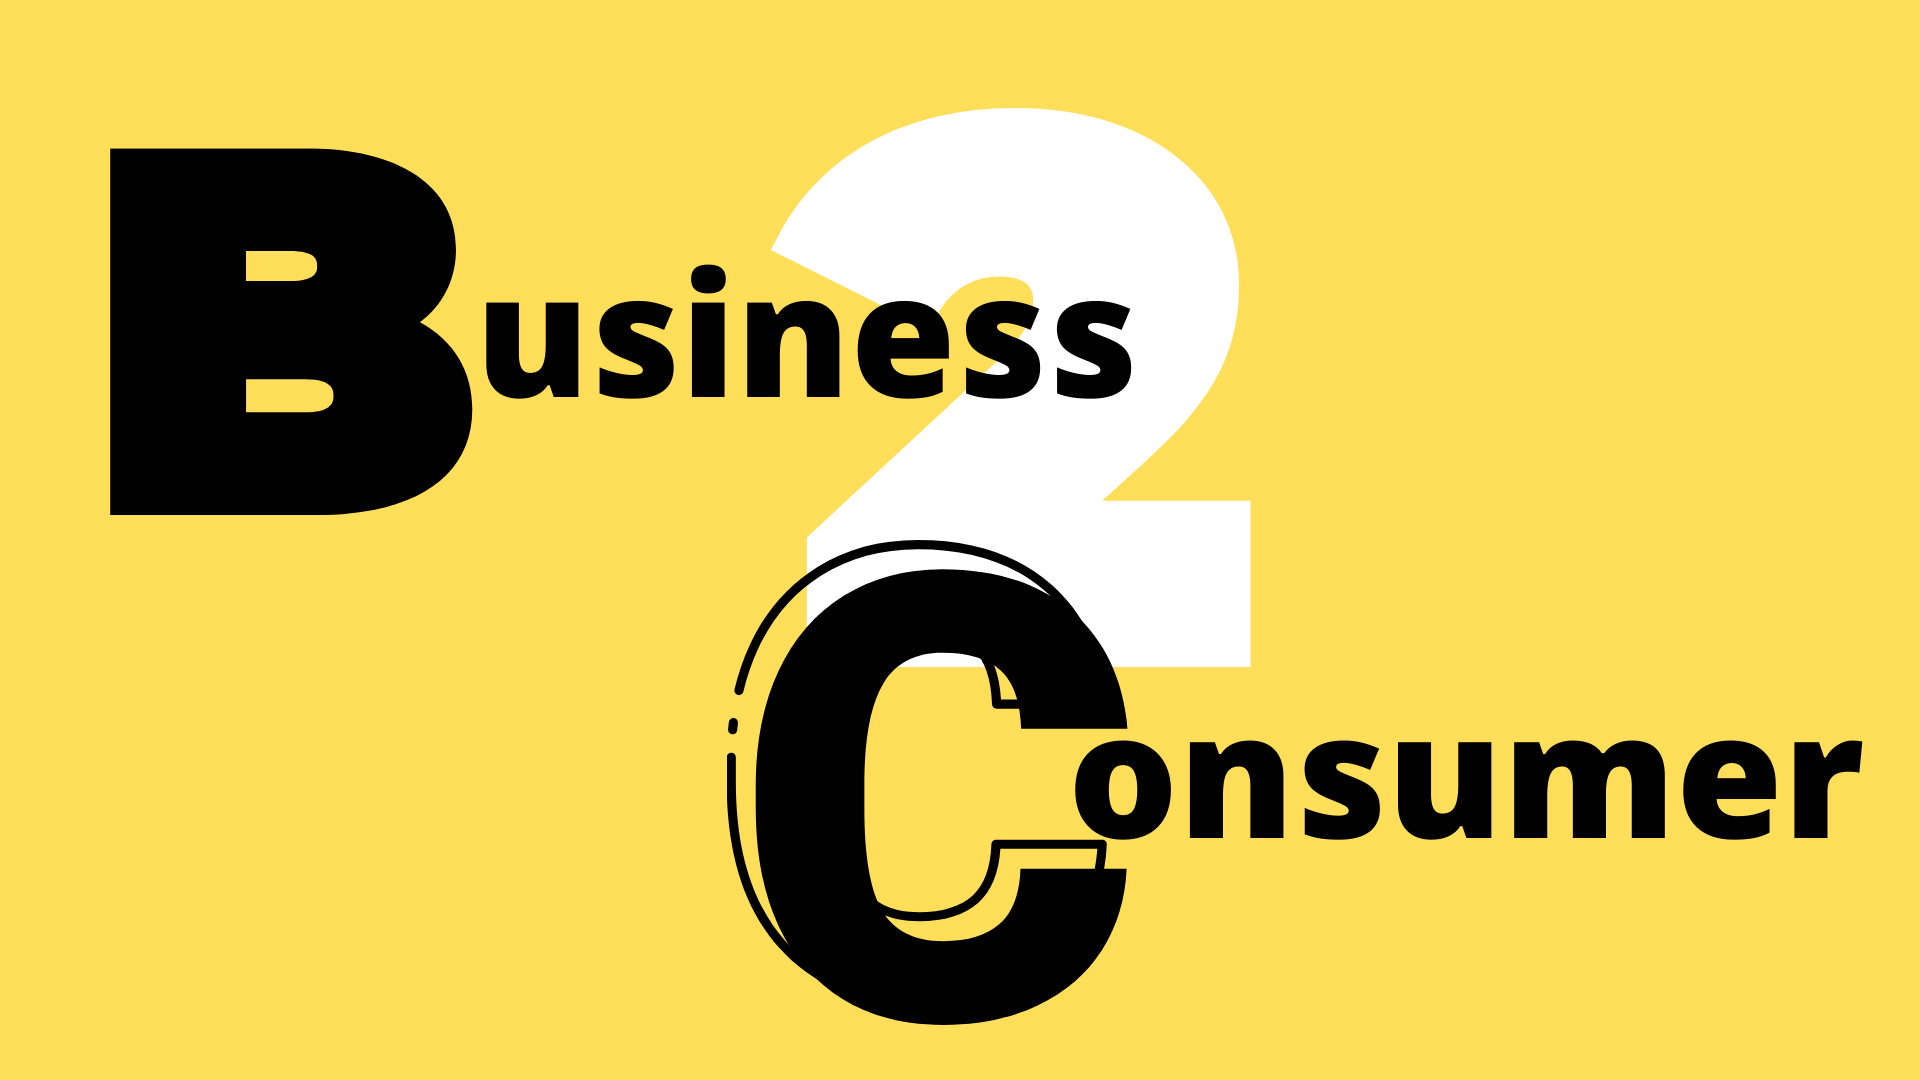 eCommerce business to consumer